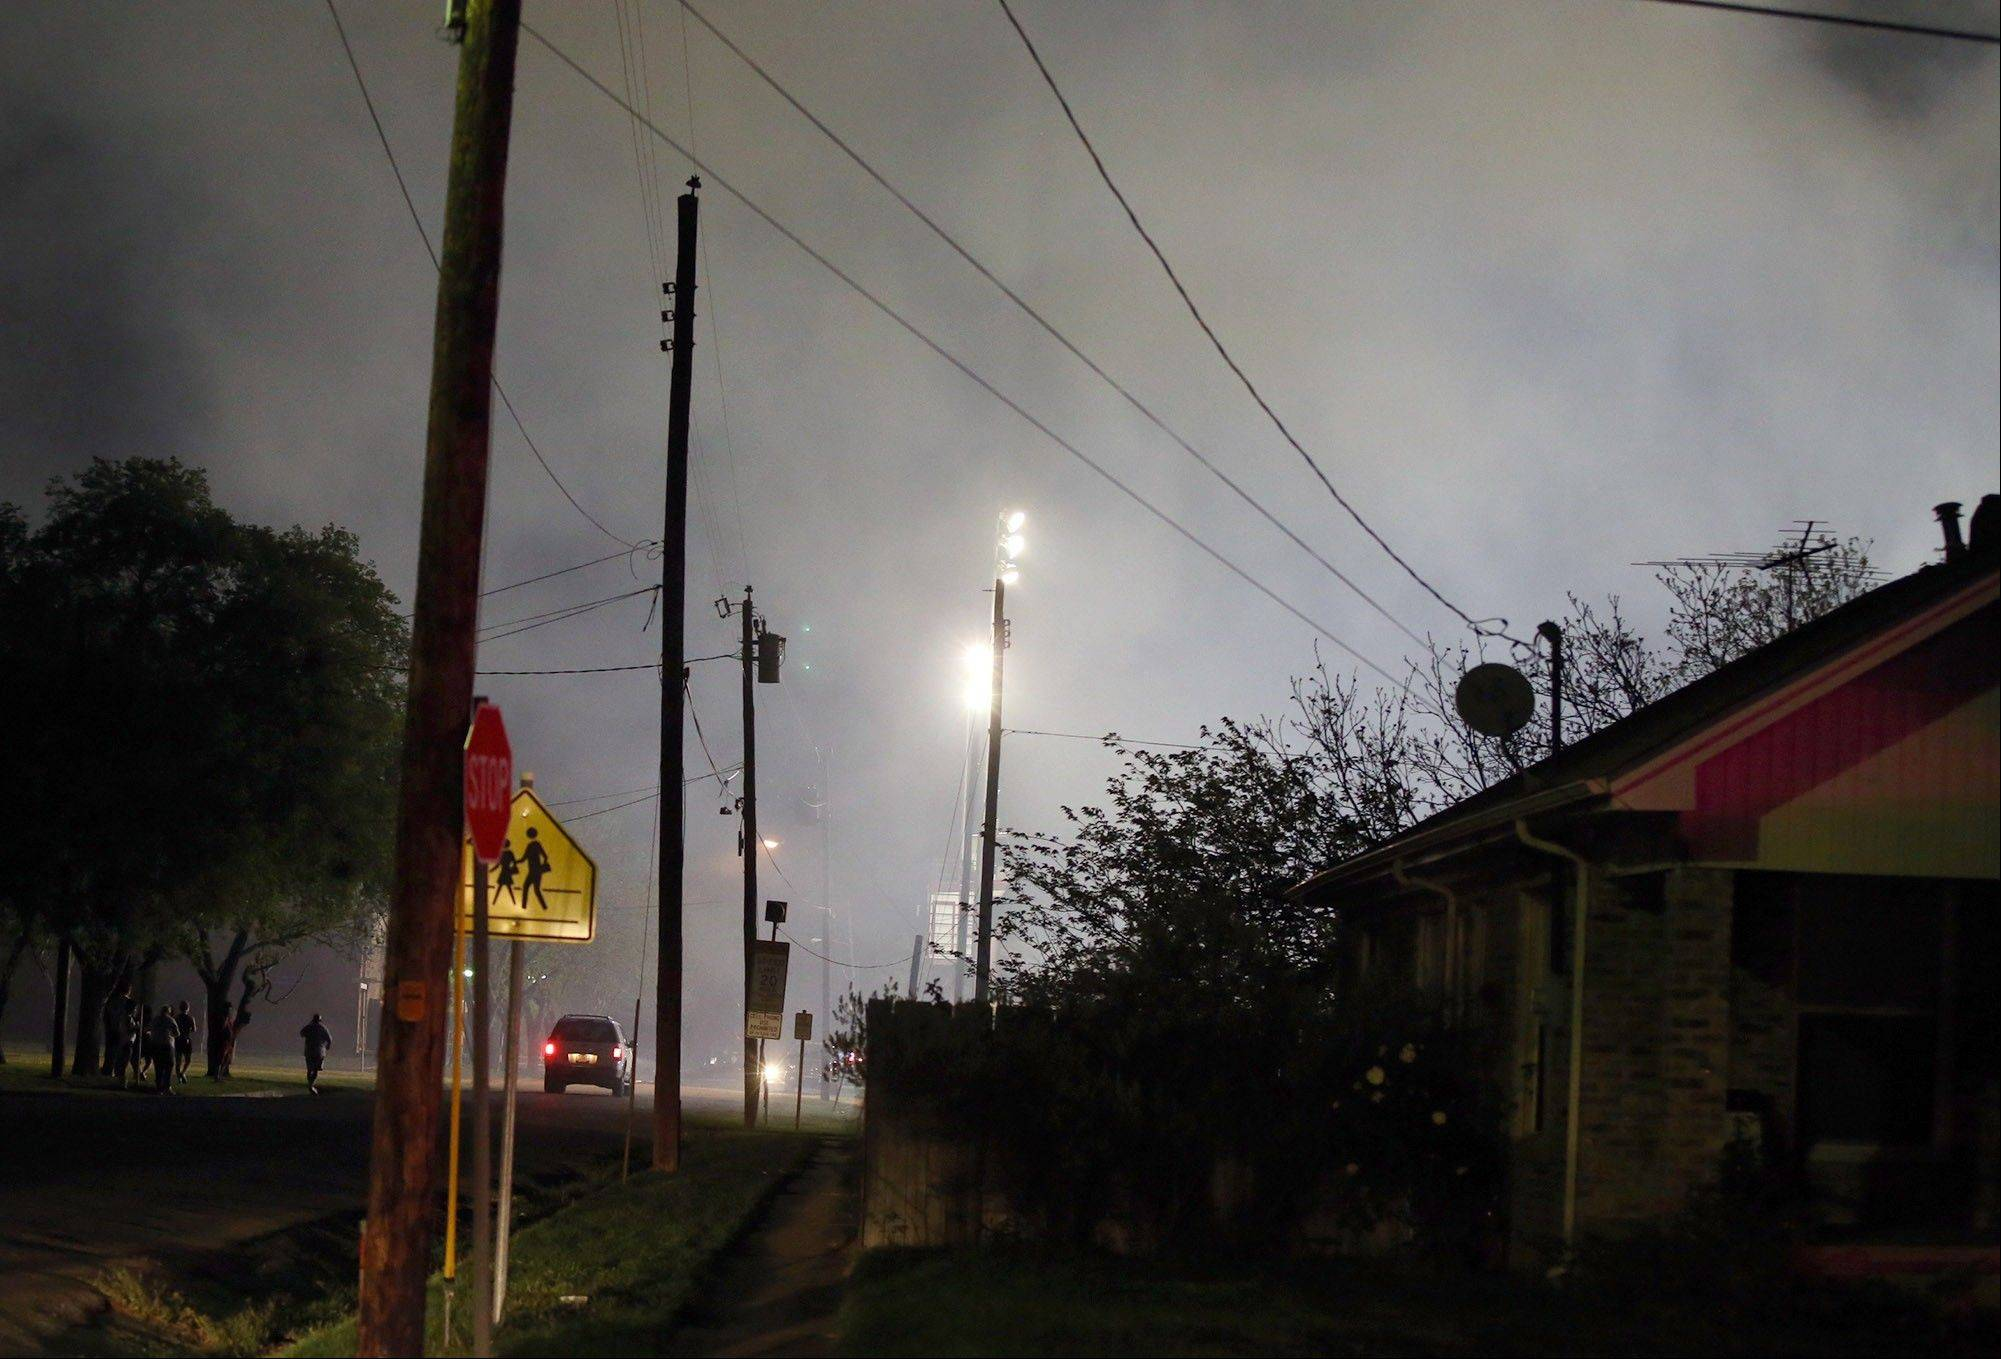 Smoke fills the air after the fertilizer plant explosion Wednesday.